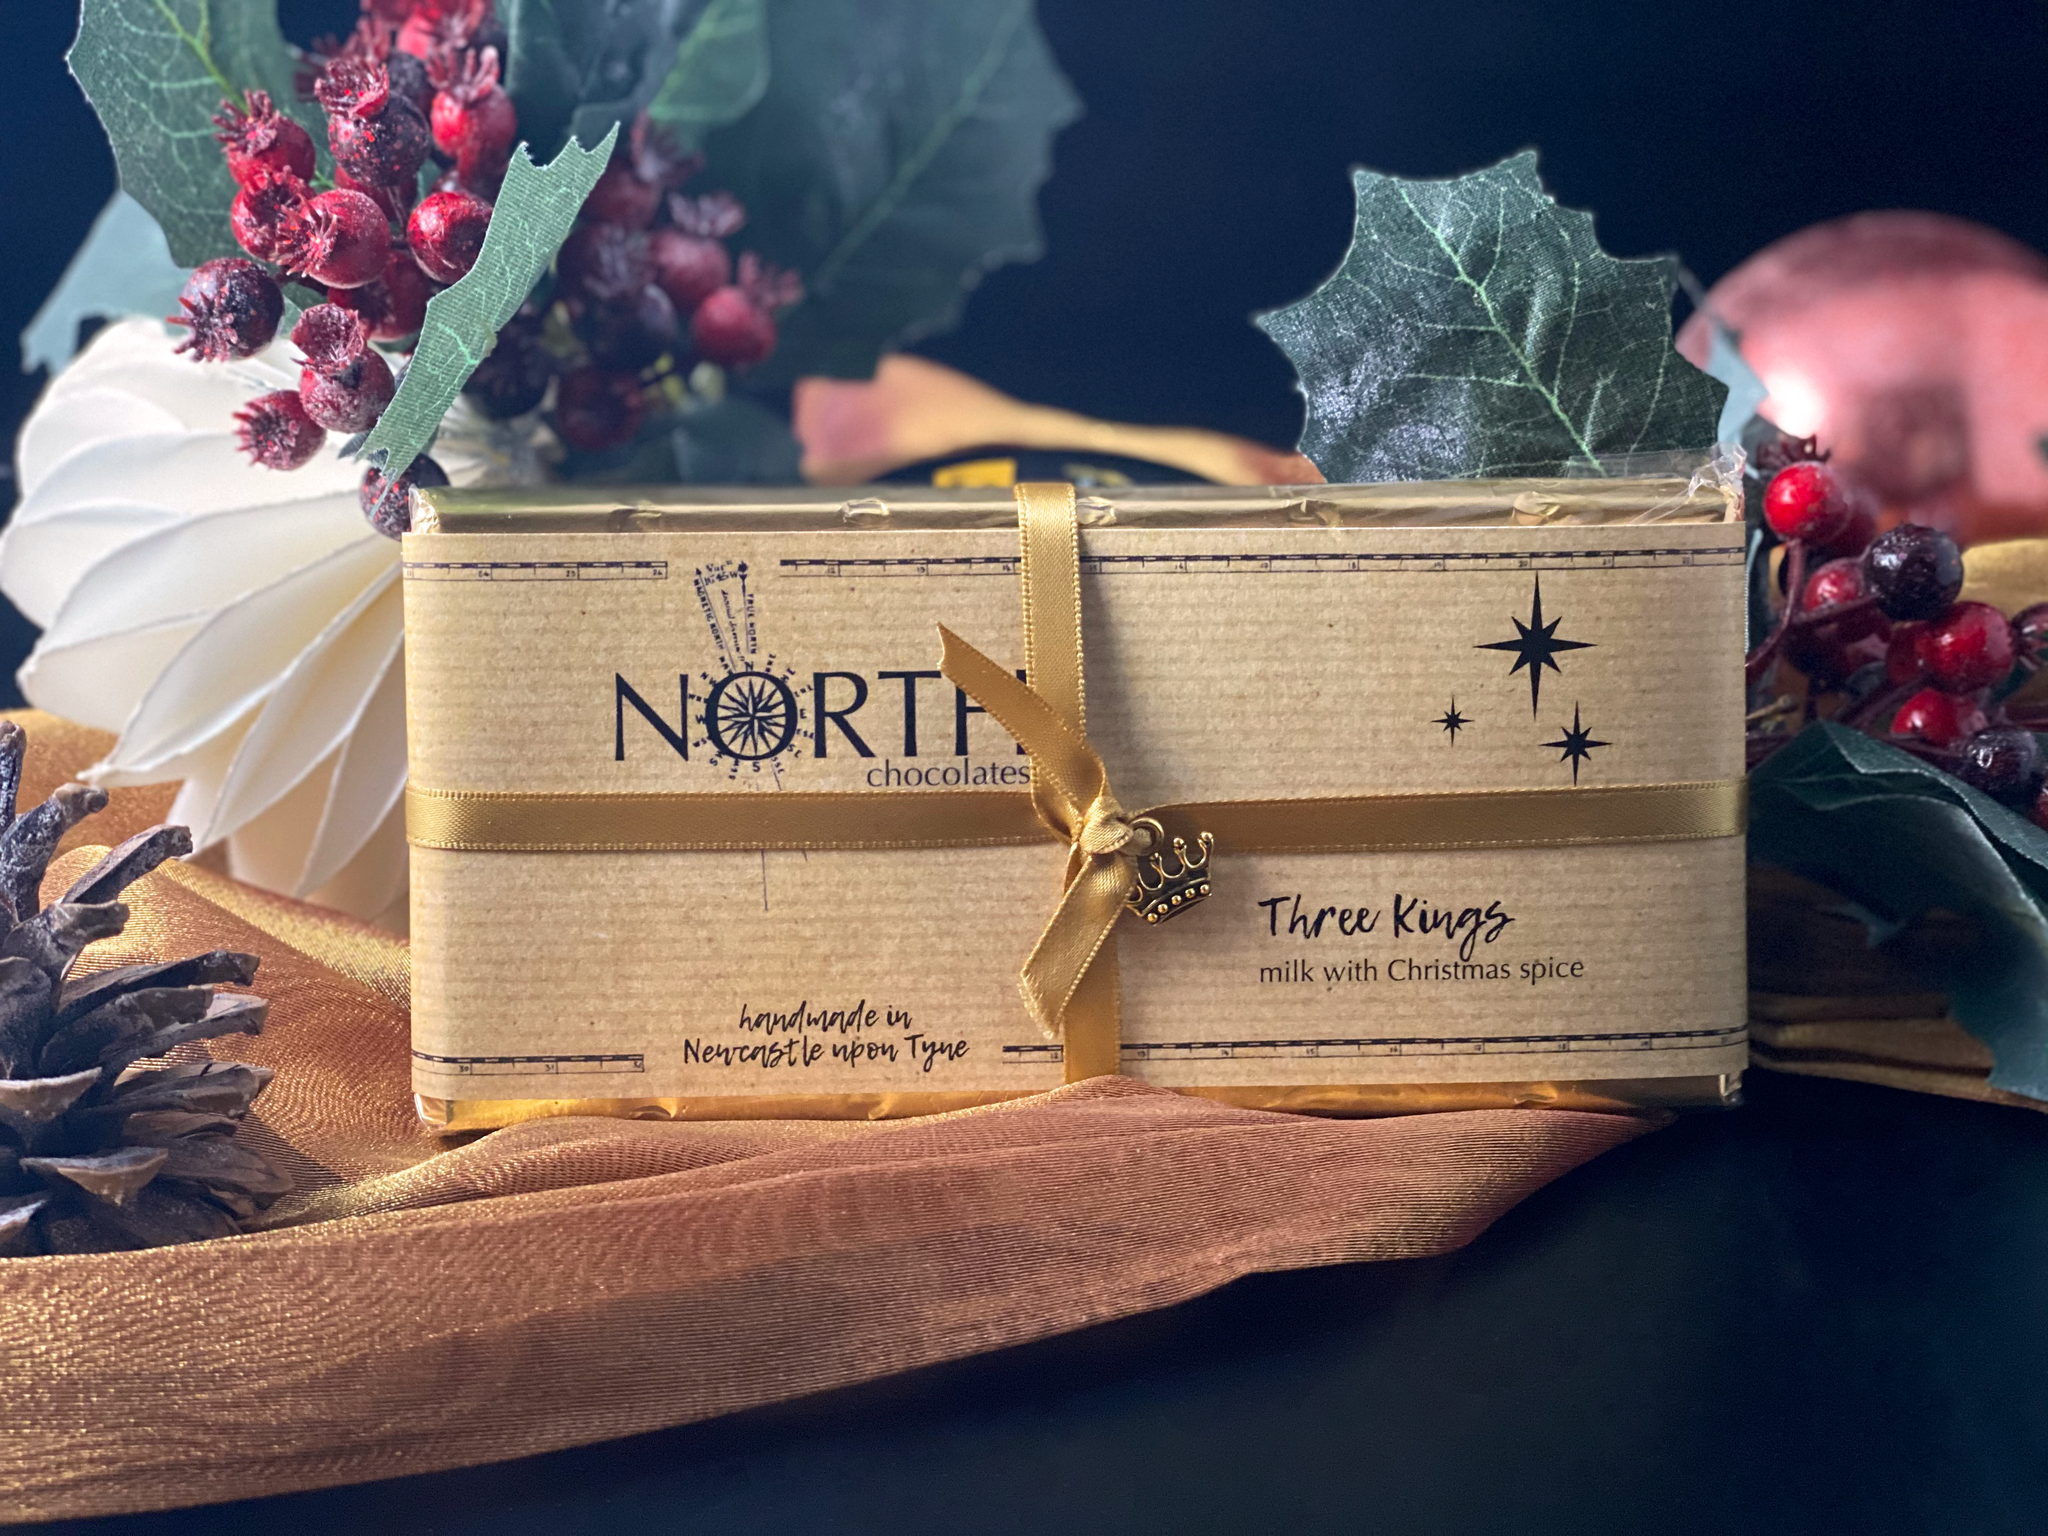 French Oven - North's Milk Chocolate Bar 'Three Kings'